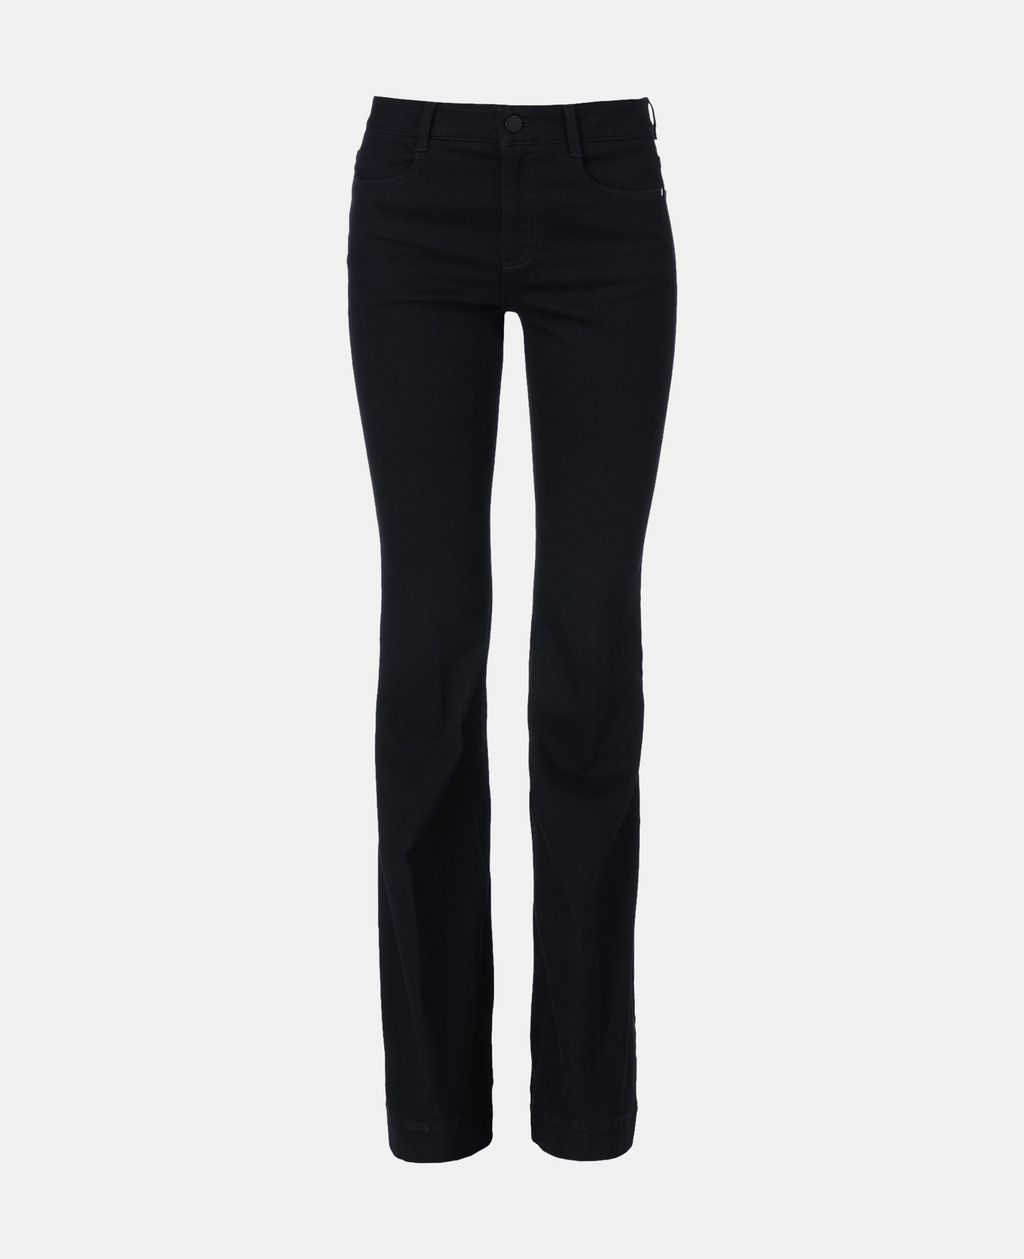 Black 70's Flare Jeans - STELLA MCCARTNEY